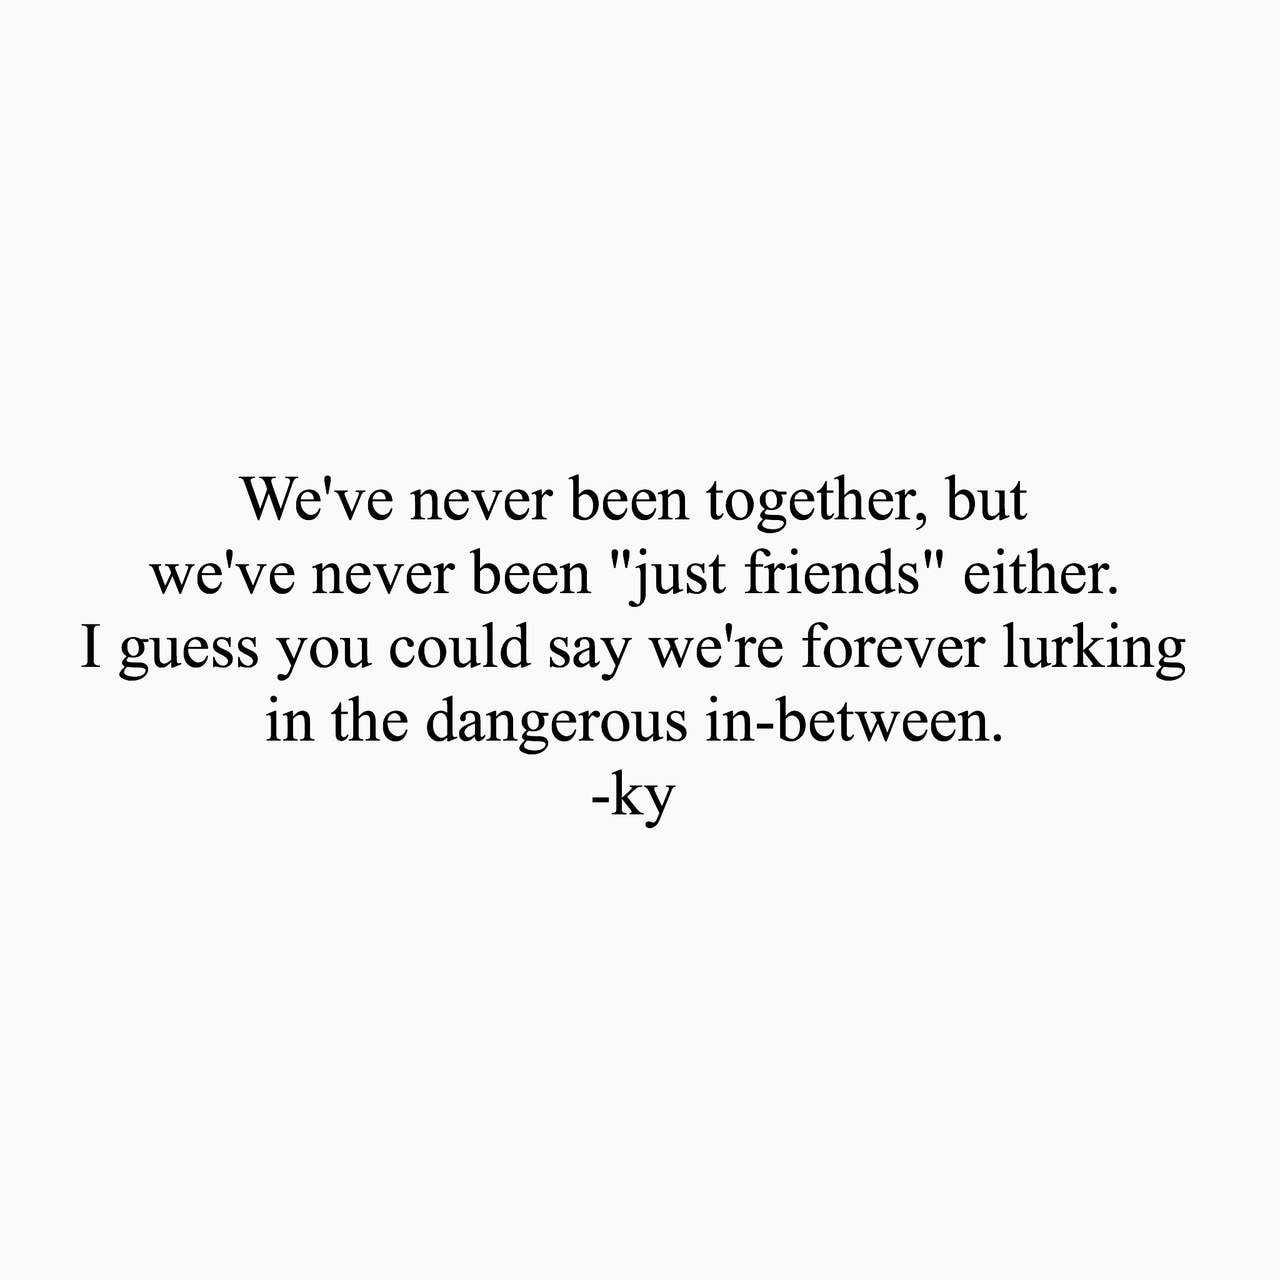 Relationship quotes images on Favim.com